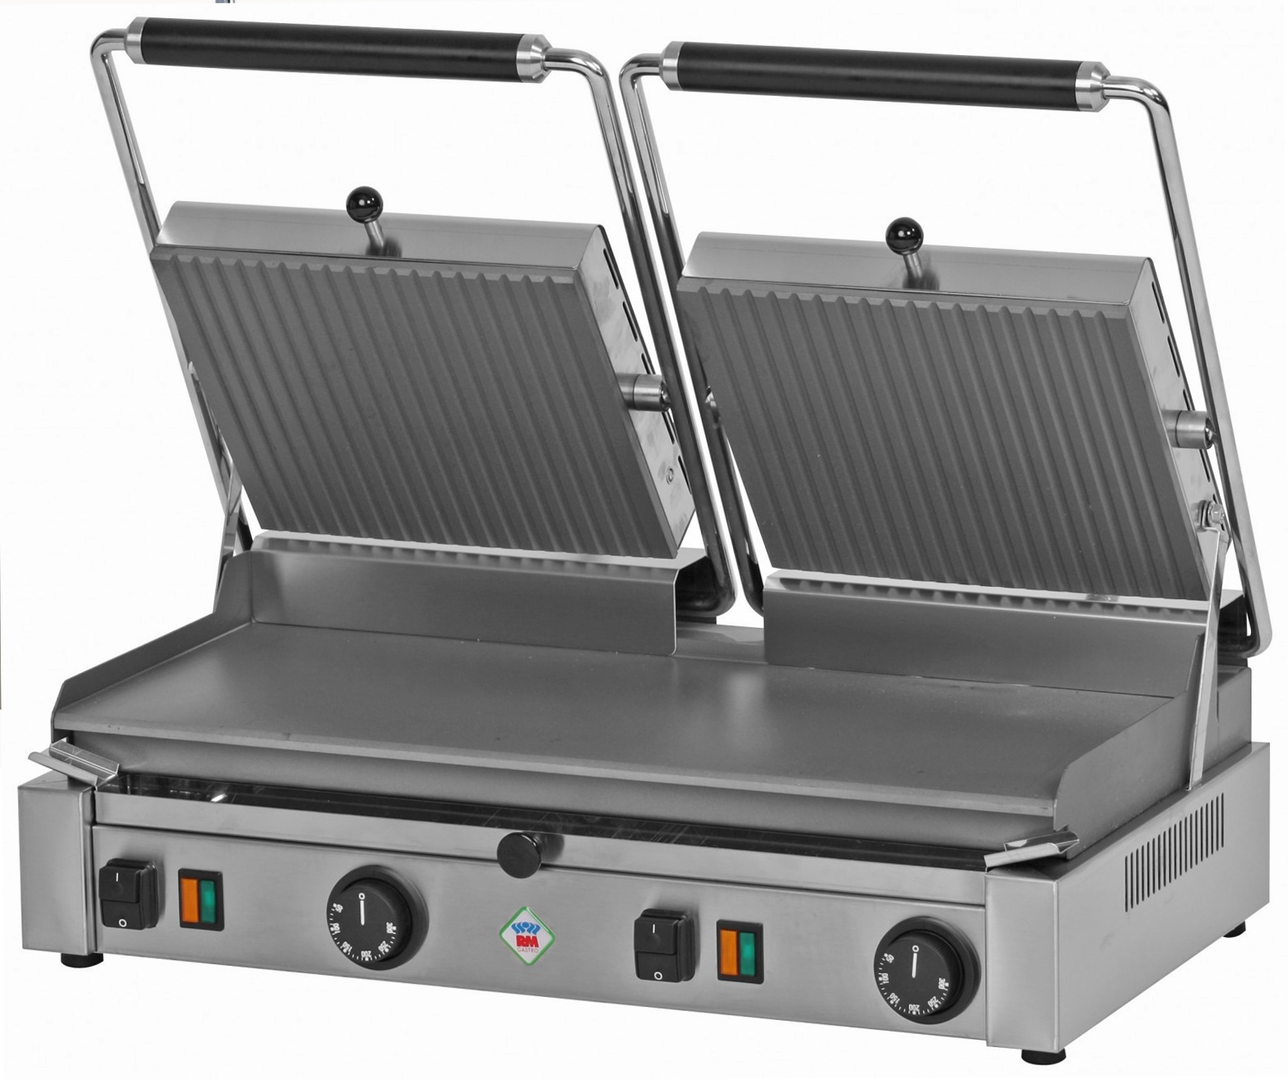 RM Gastro contact grill PD2020L